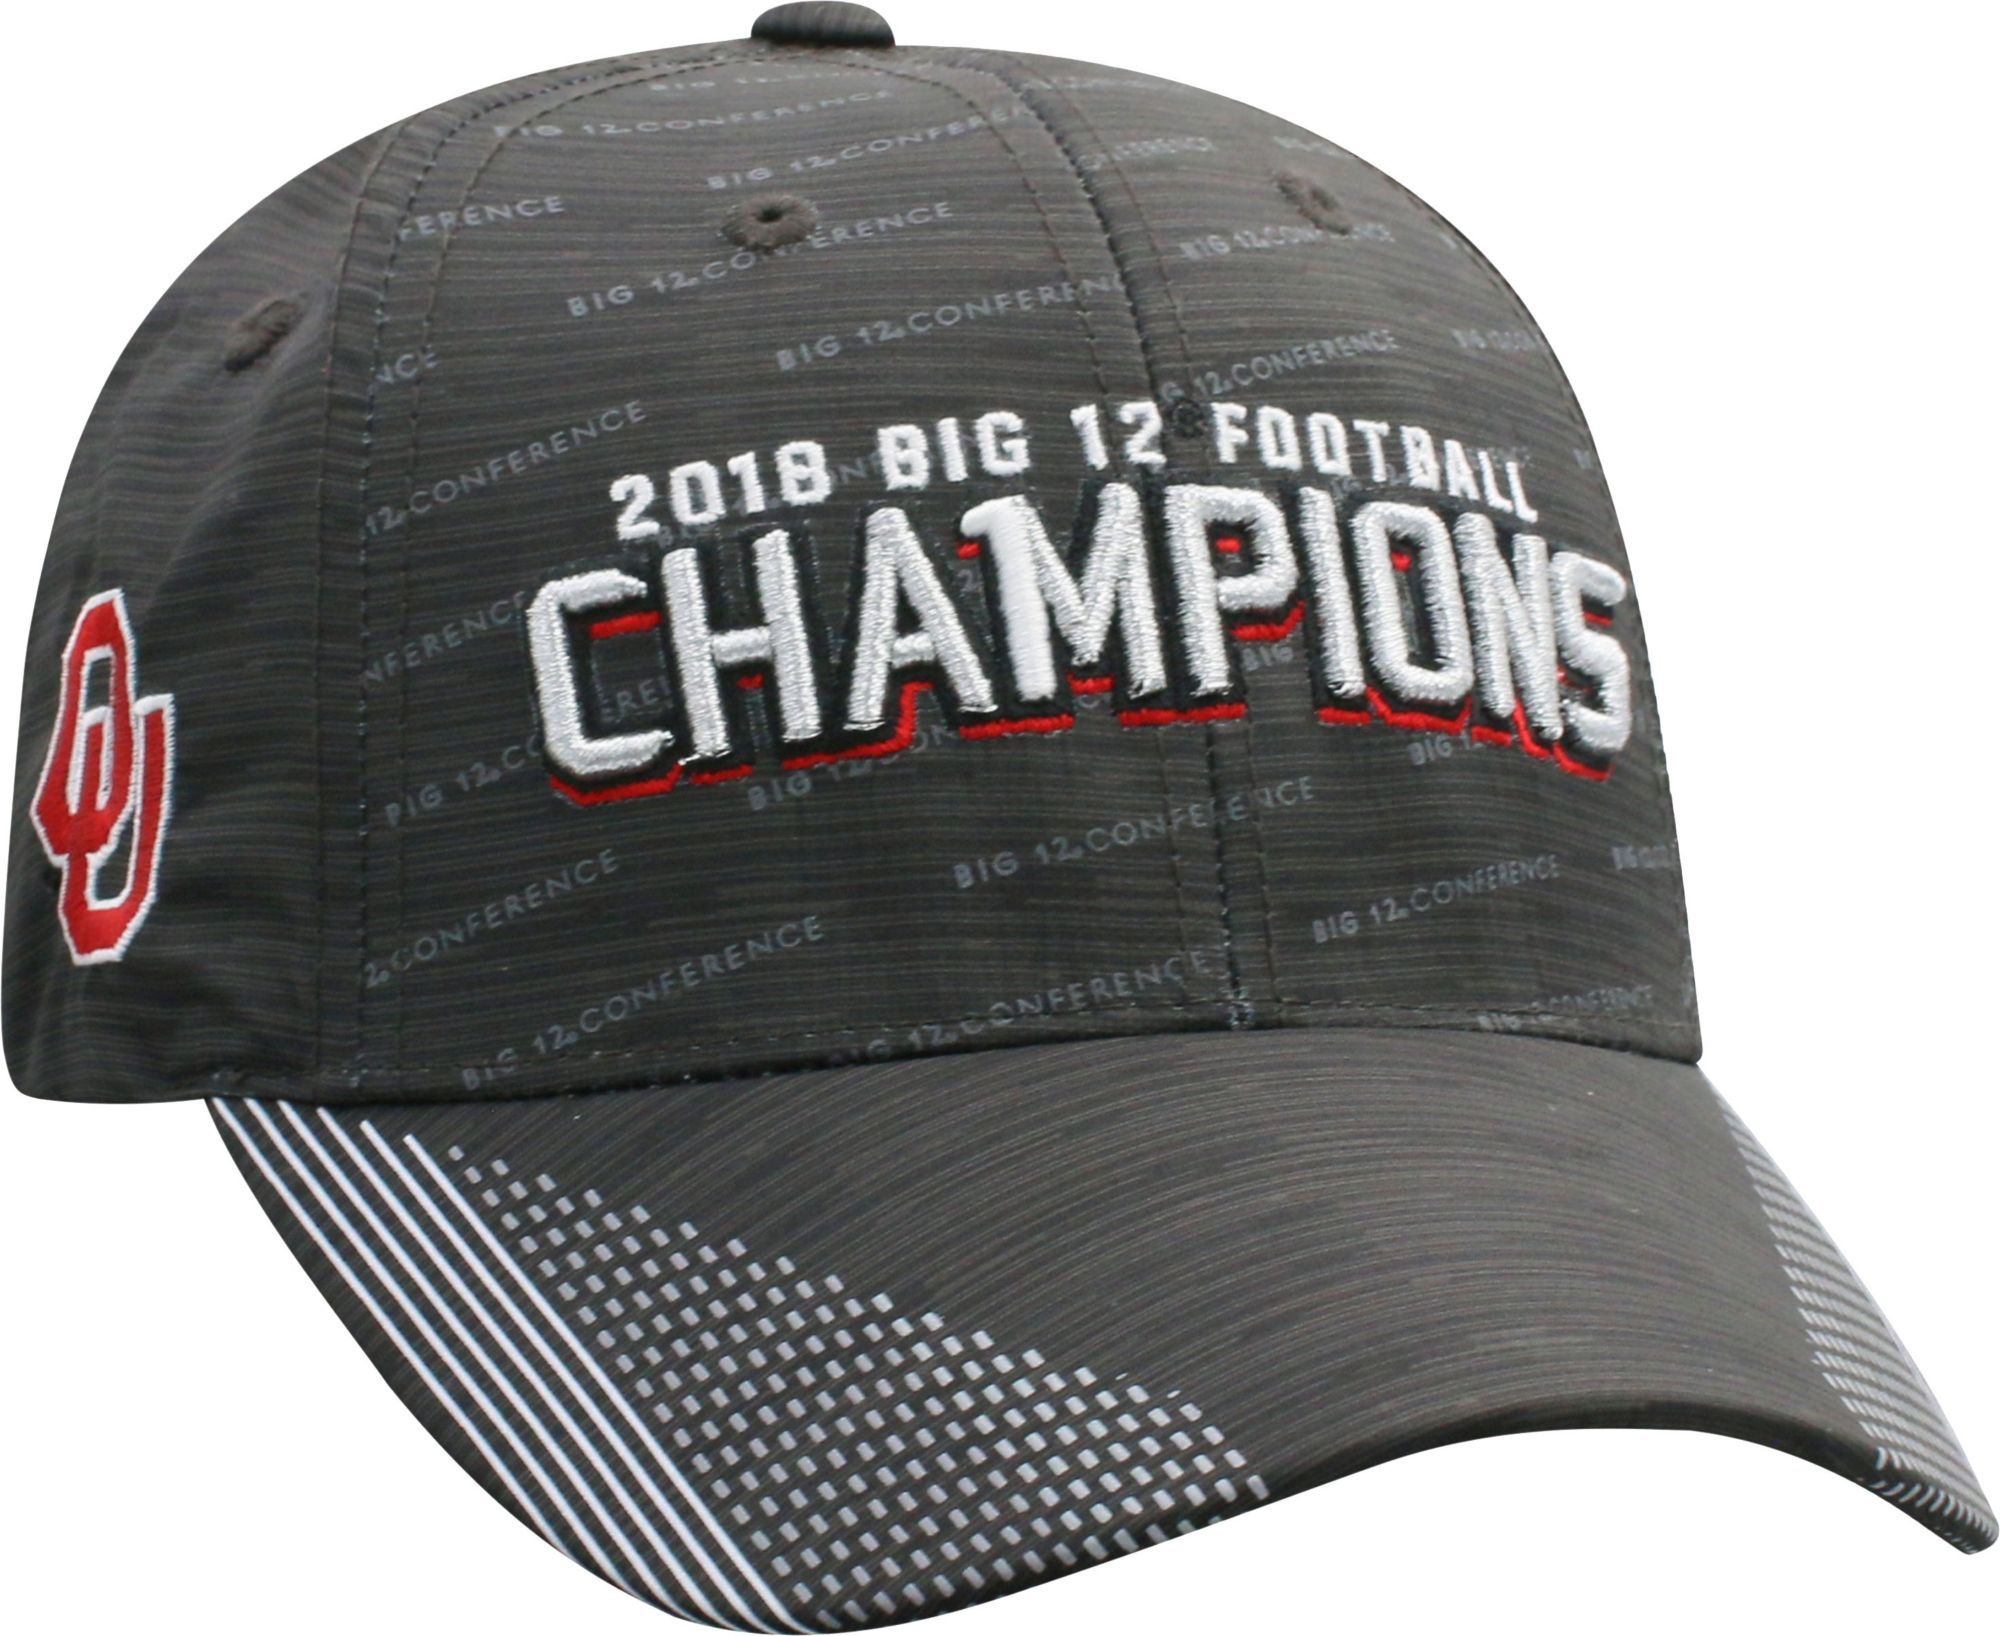 1805b590d73d2 Top of the World Men s 2018 Big 12 Football Champions Oklahoma Sooners  Locker Room Hat